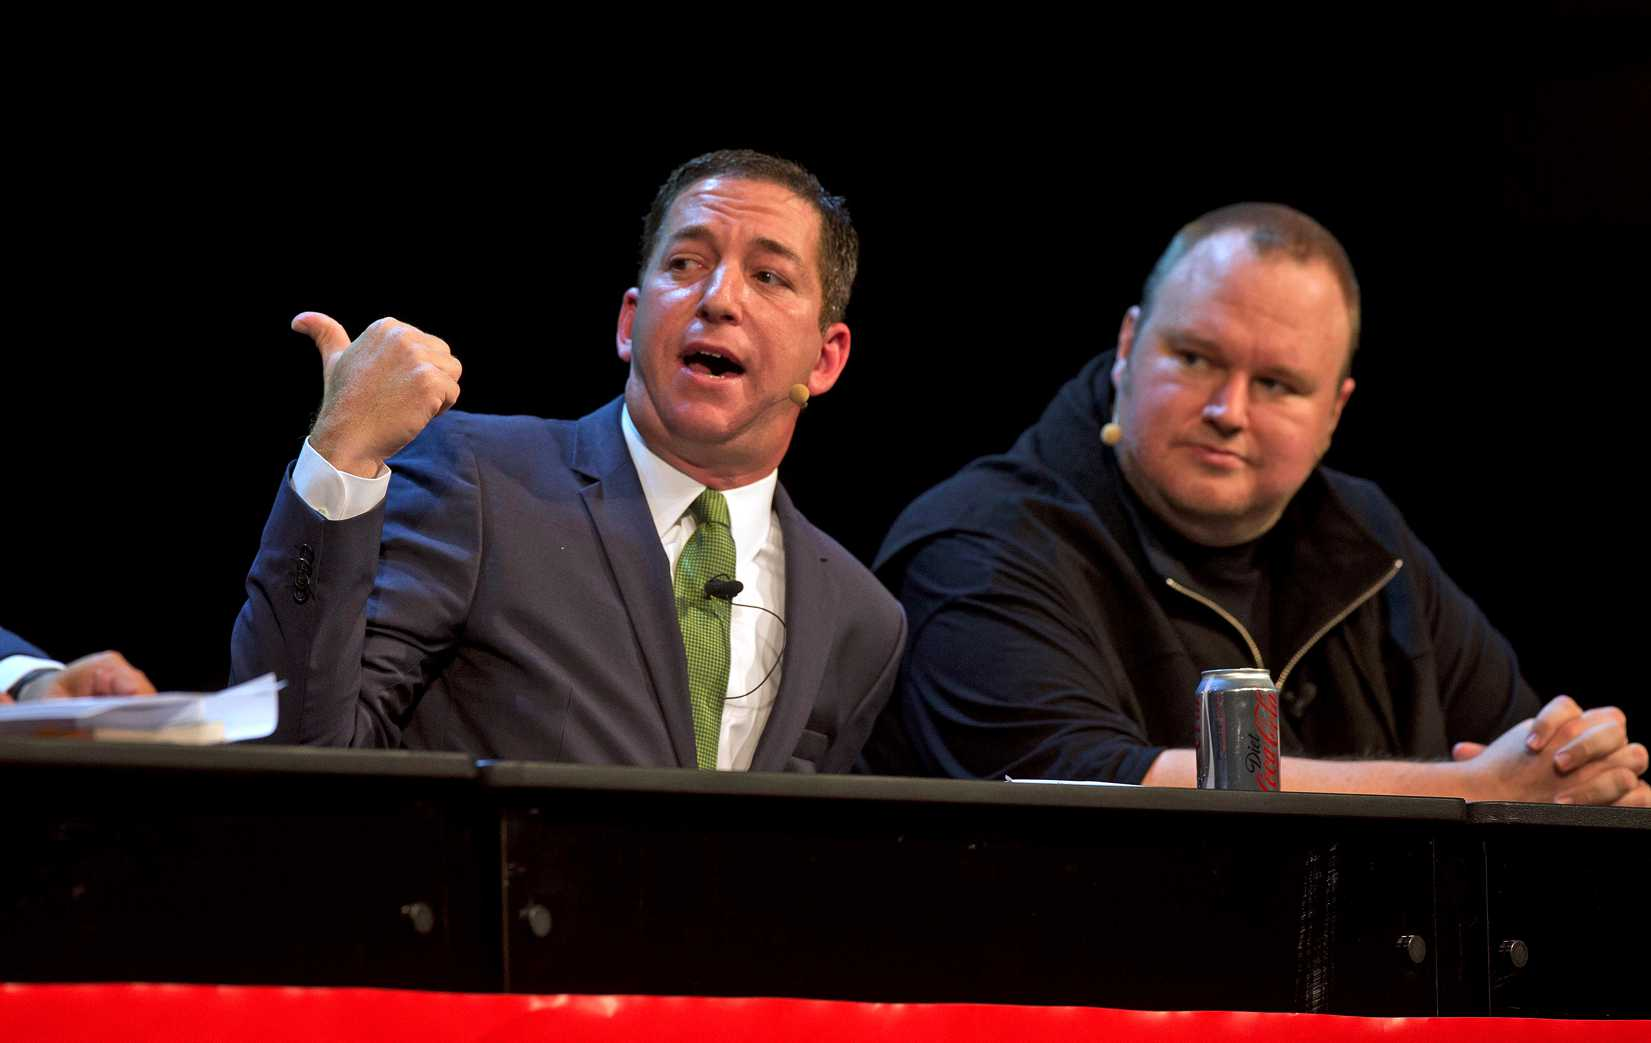 Journalist and author Glenn Greenwald, left, and Kim Dotcom attend a political forum at in Auckland on Sept. 15, 2014